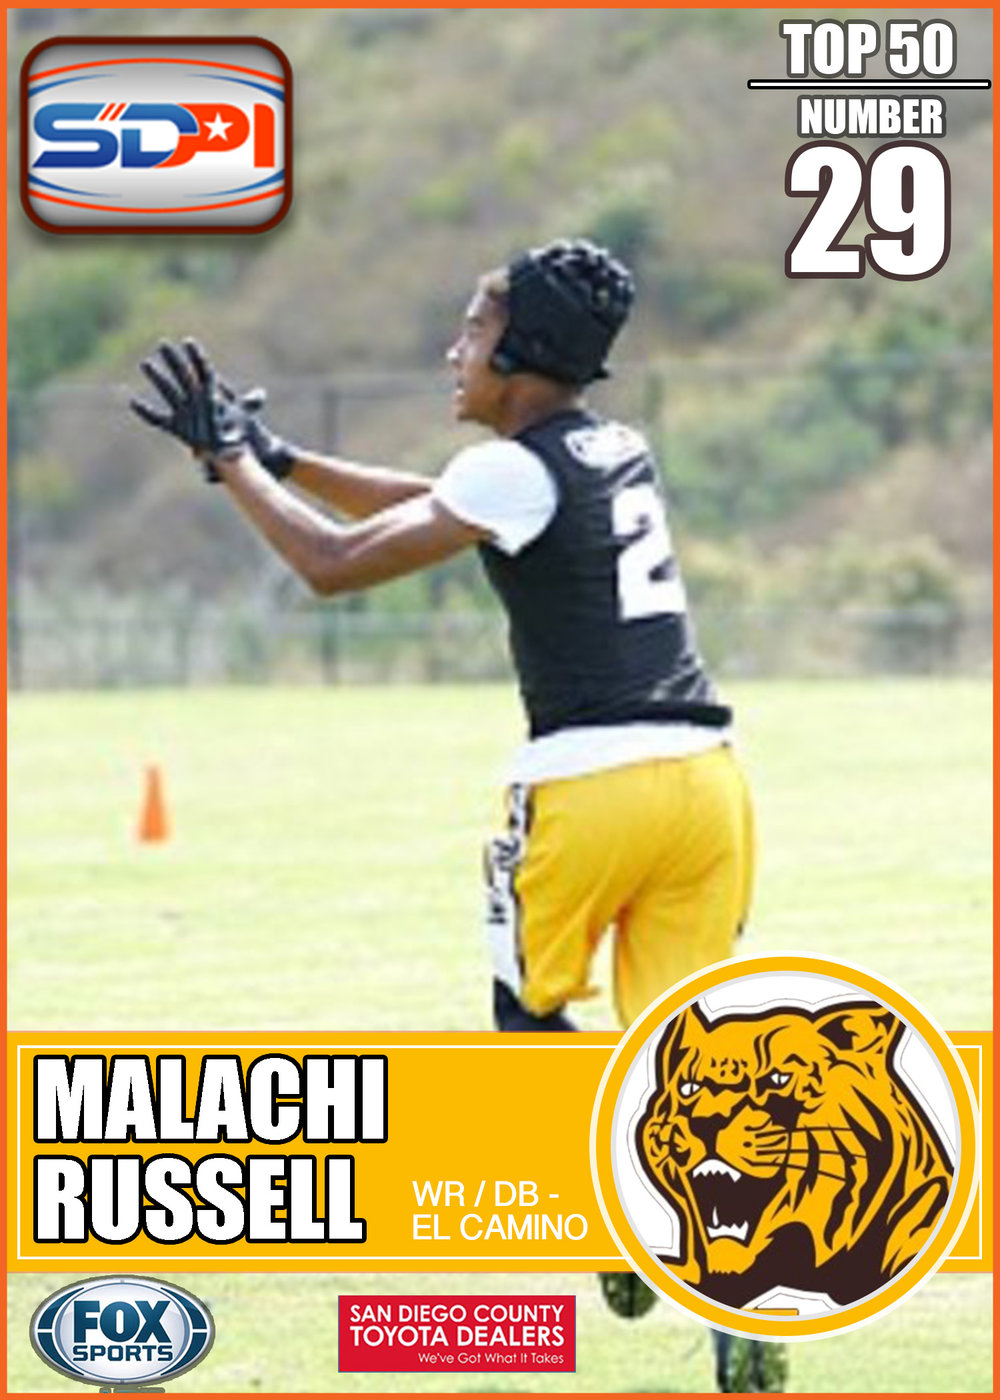 - Malachi is a naturally gifted playmaker with speed, agility, and strong hands. He's the type of player who can take a five-yard route in tight coverage for a +40-yard TD. He scored 24 receiving touchdowns and led the state of California with 1,742 receiving yards in 2016. Russell is going to torch secondaries some more in 2017.